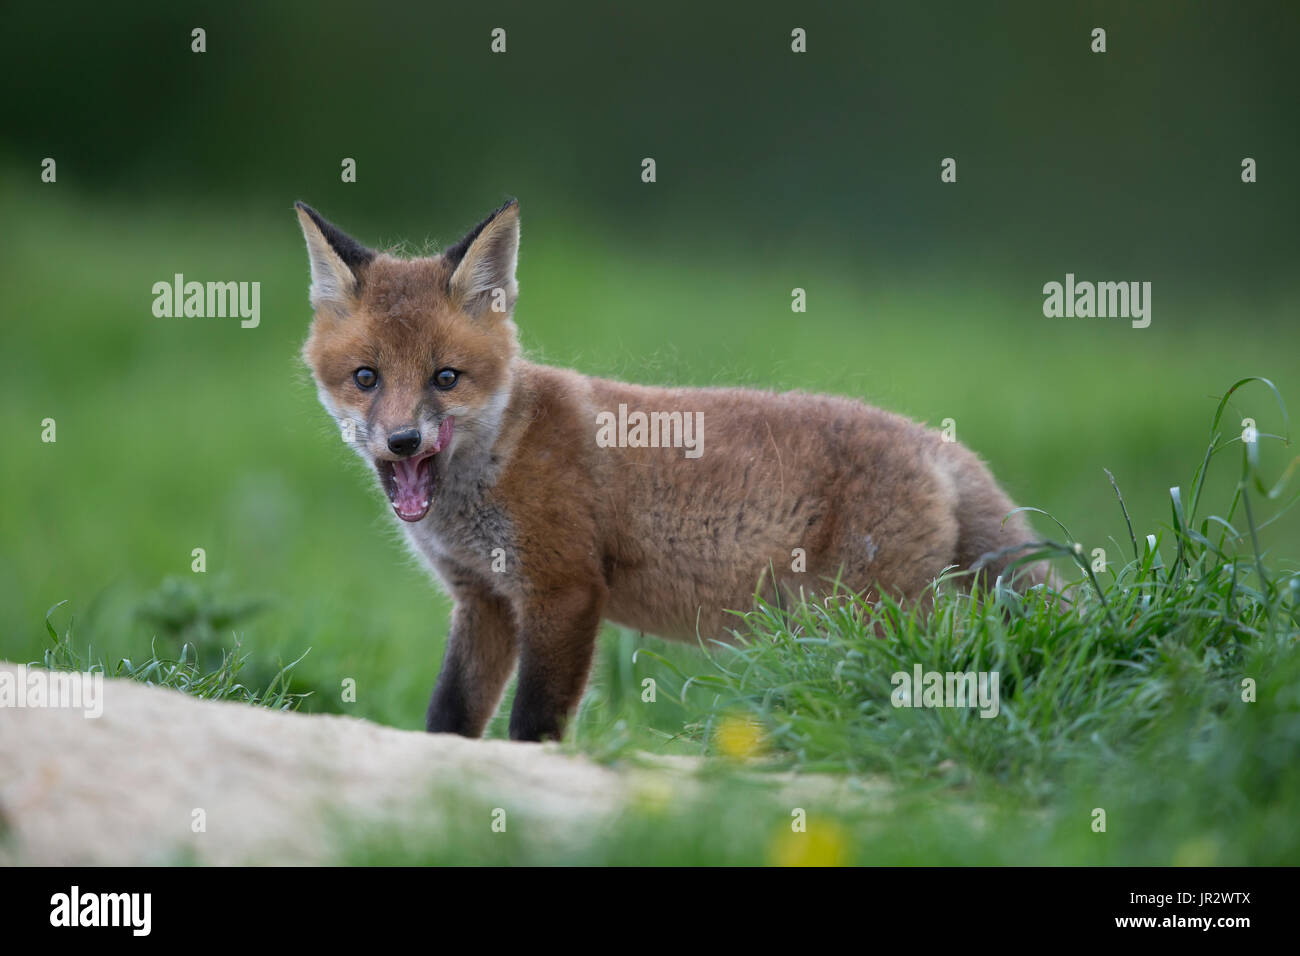 Cub Red Fox in a meadow at spring - GB - Stock Image